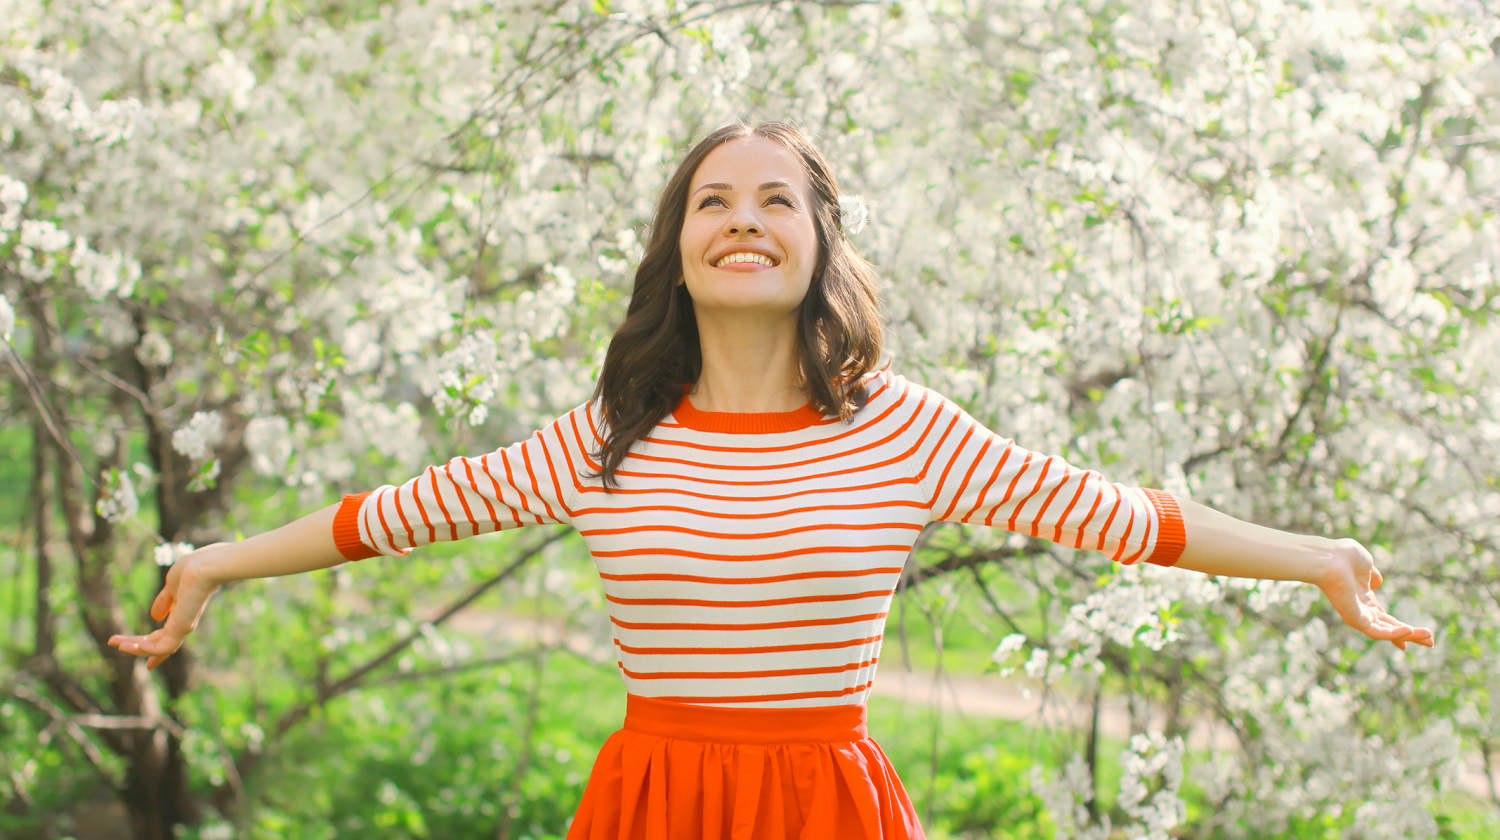 Beautiful happy young woman enjoying smell in a flowering spring garden | Reasons Why Self-Empowerment Is Important | How You Can Empower Yourself | women empowerment | Featured